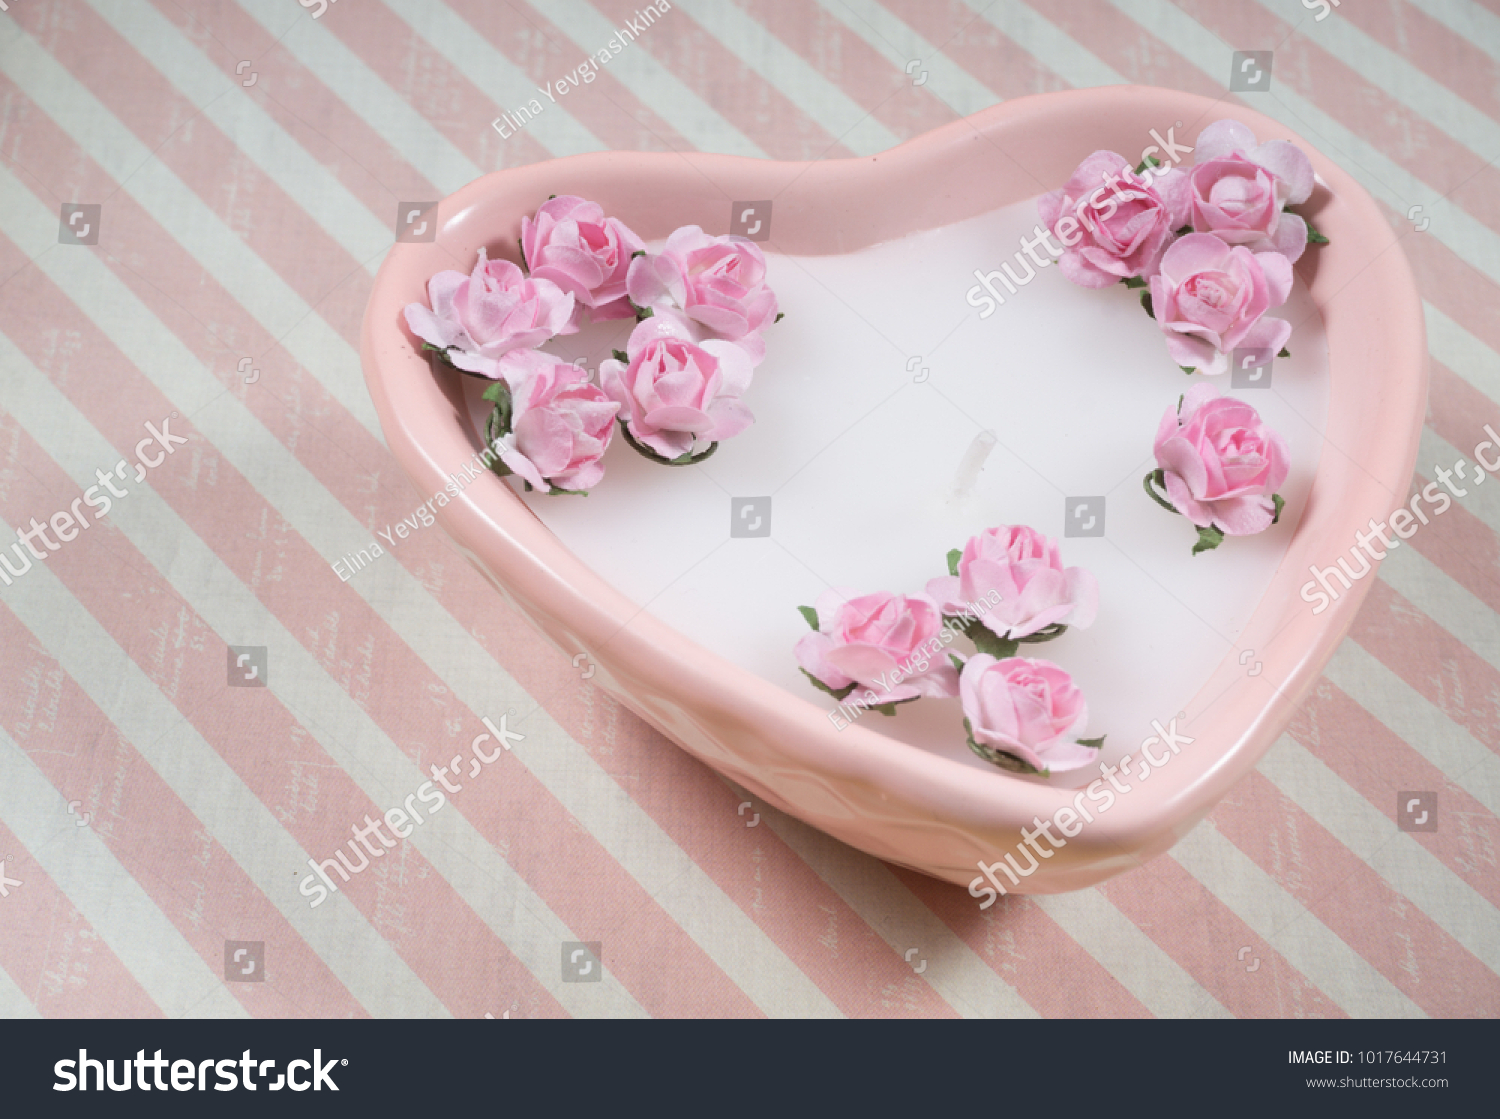 Decoration For Valentines Day Pink Heart Shaped Candle With Little